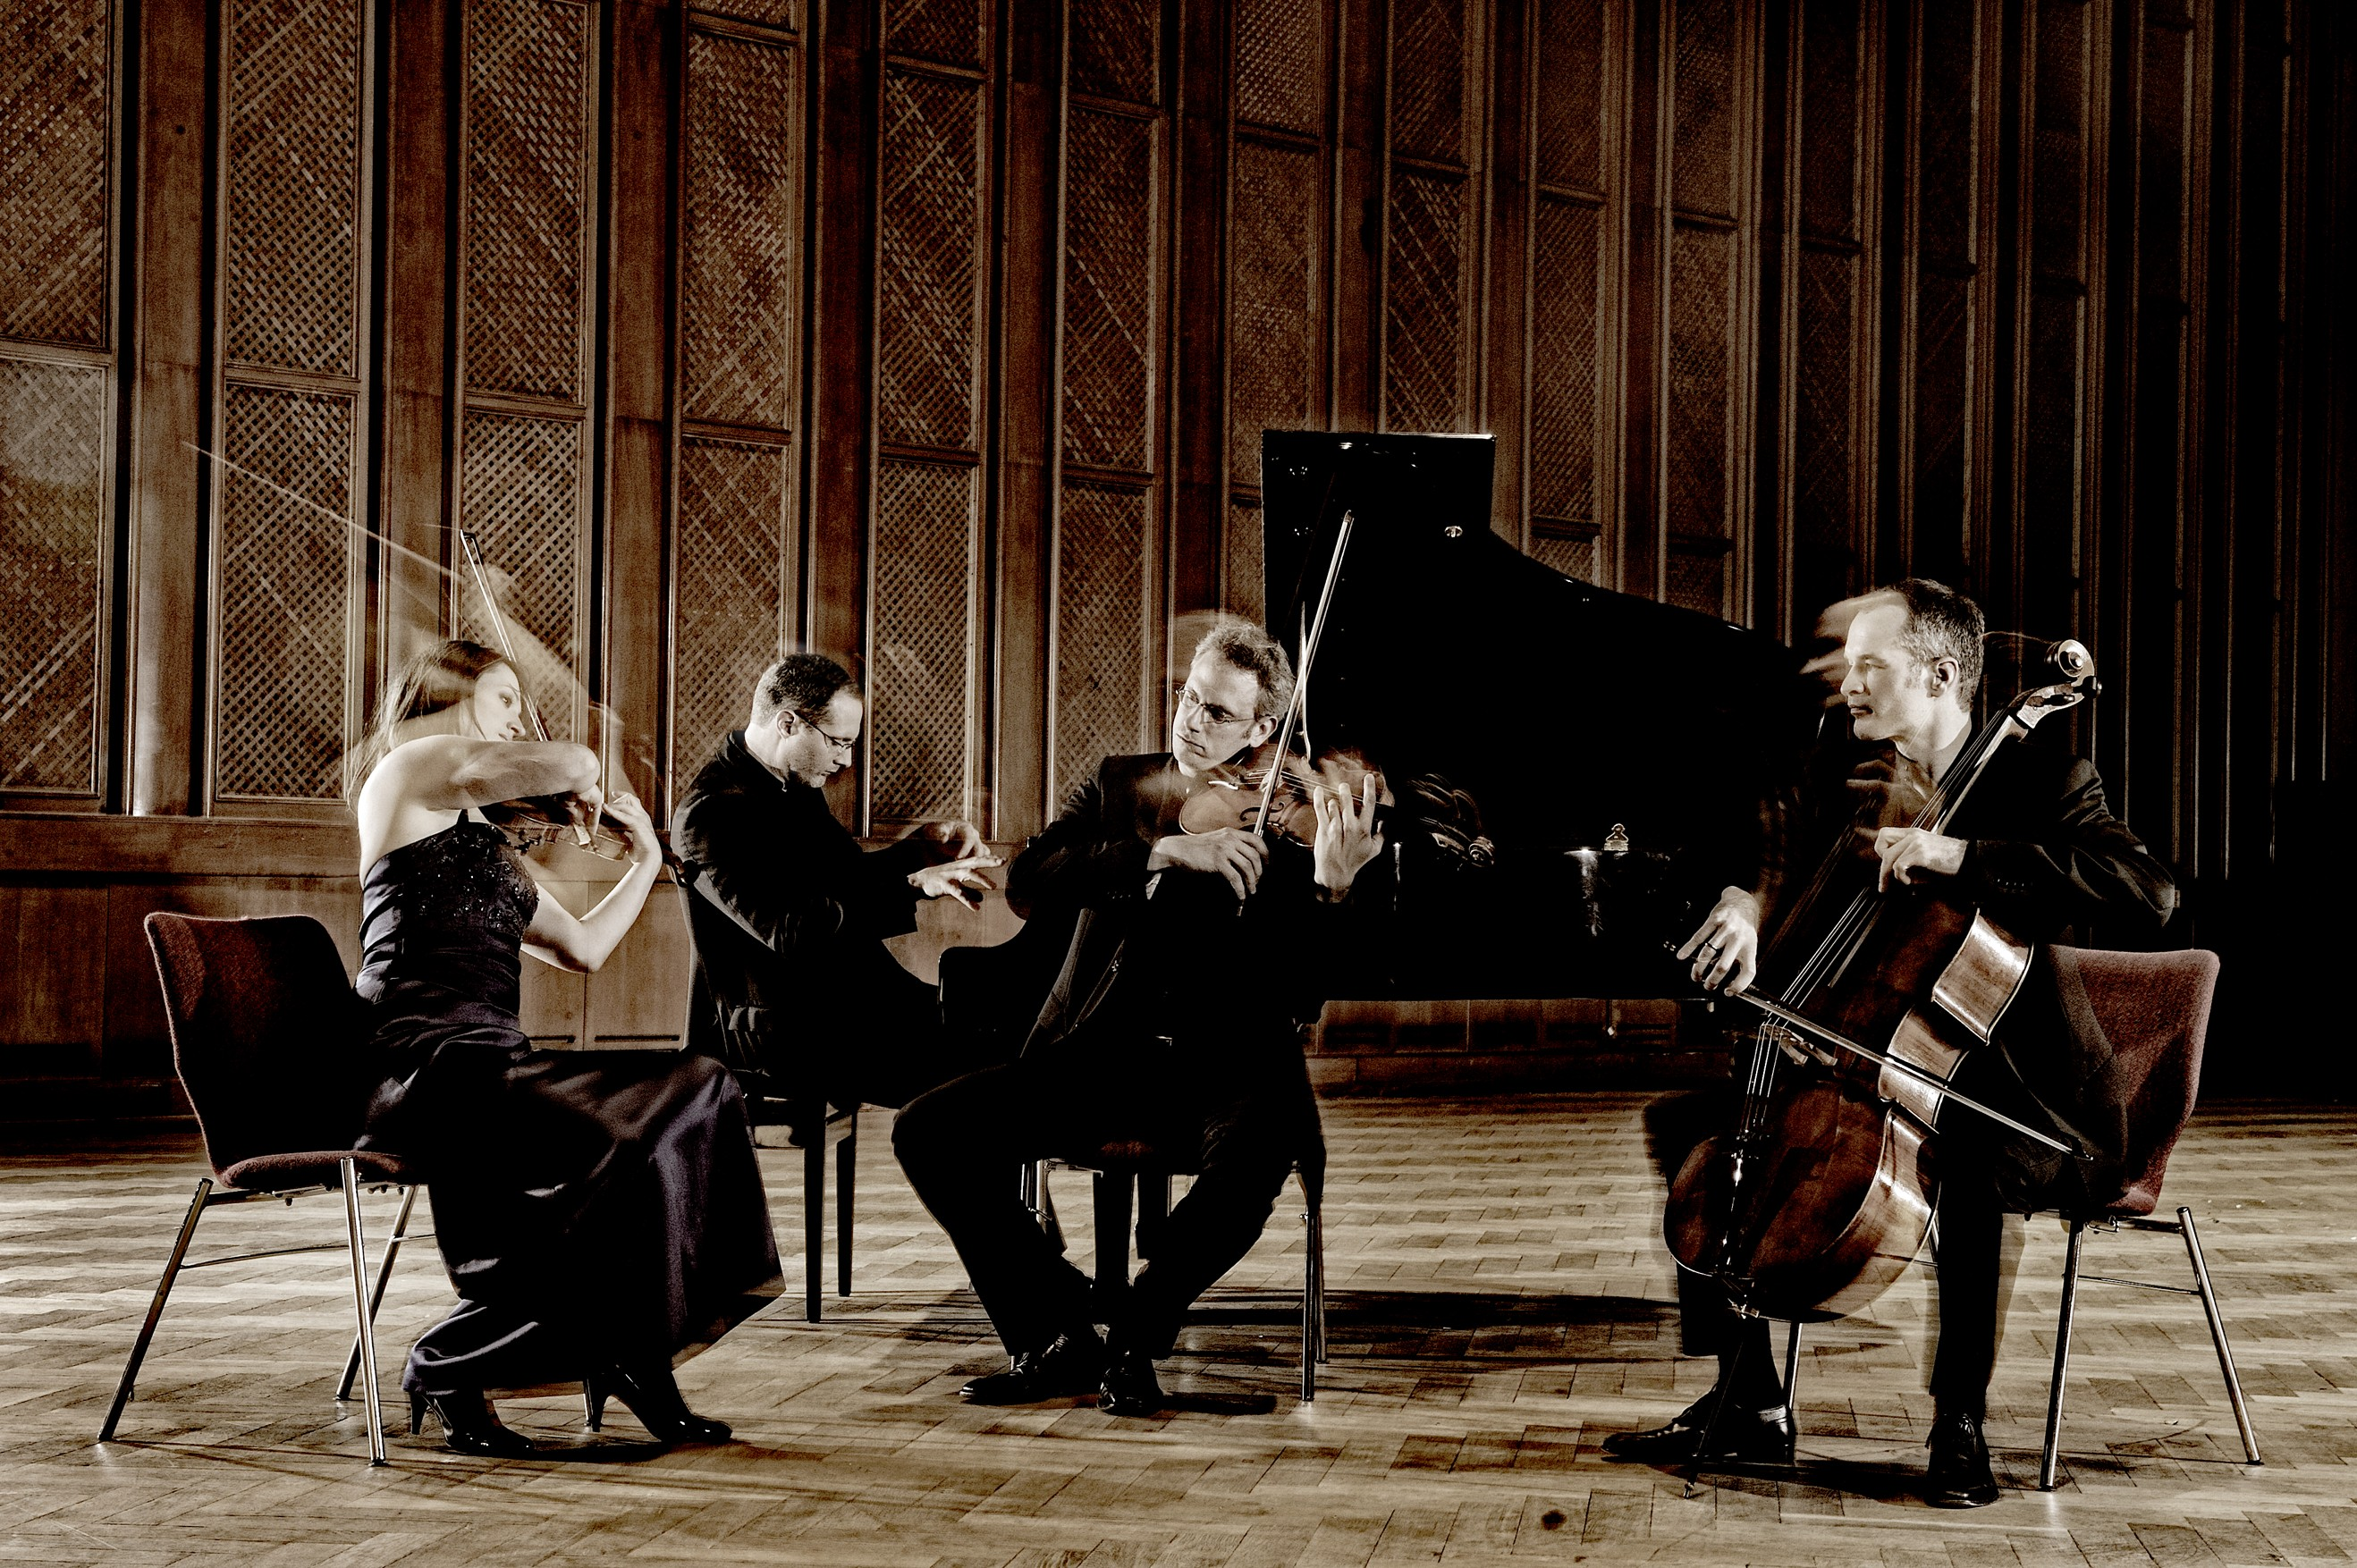 The Faurè Quartett comes to Wichita Falls